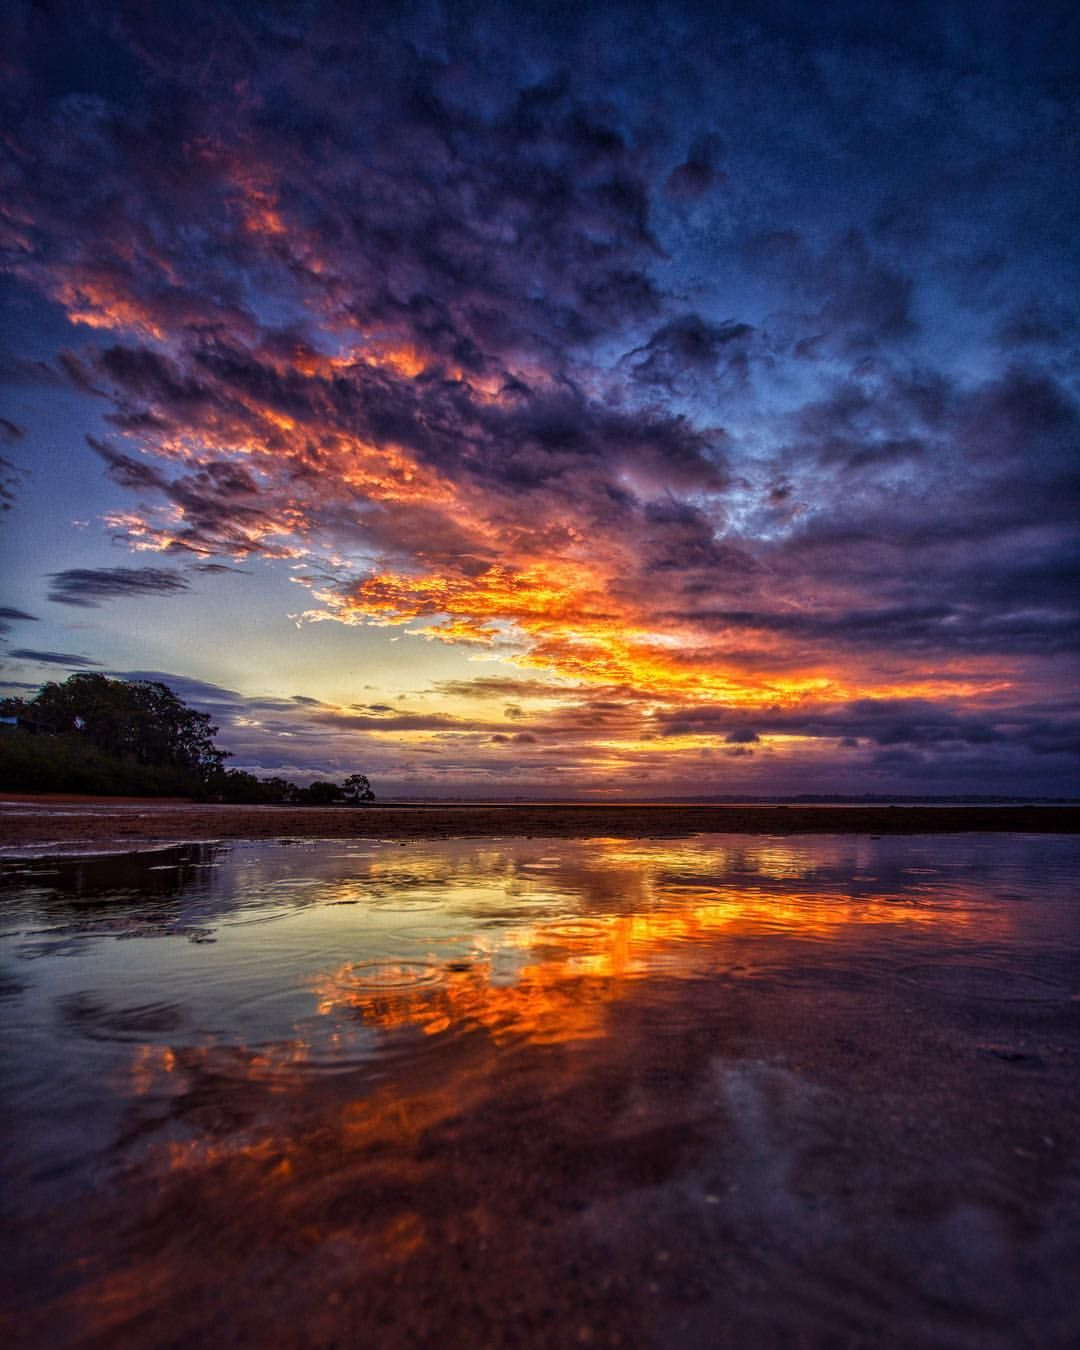 Astonishing Sunsets And Sunrises From Southeast Queensland In 2020 Sunrise Photography Beautiful Landscape Photography Sunset Photography